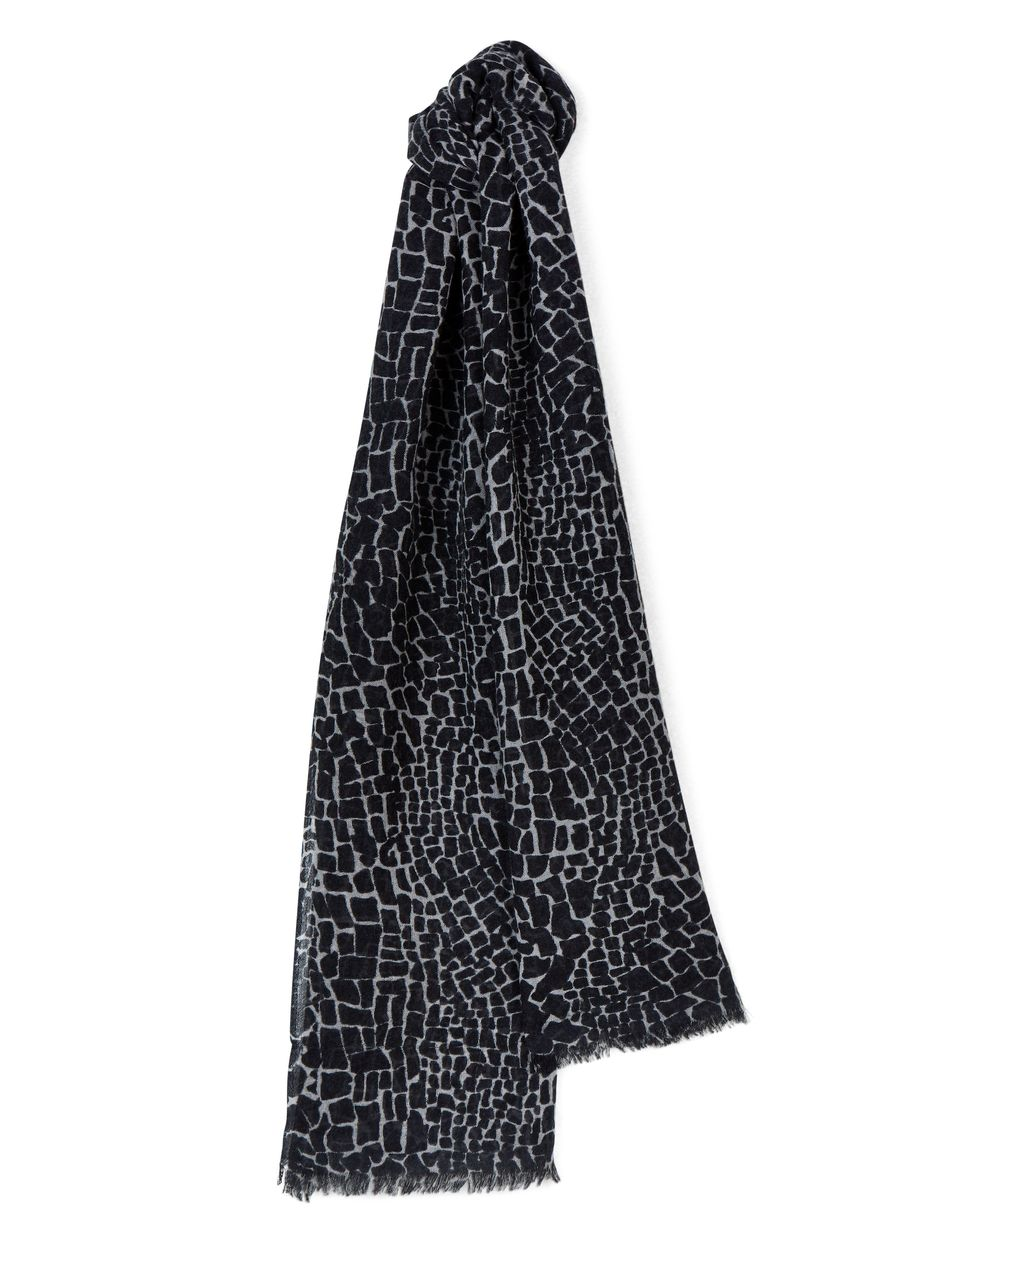 Wool Silk Crackle Print Scarf, Grey - secondary colour: mid grey; predominant colour: black; occasions: casual; type of pattern: standard; style: regular; size: standard; material: fabric; pattern: patterned/print; multicoloured: multicoloured; season: a/w 2016; wardrobe: highlight